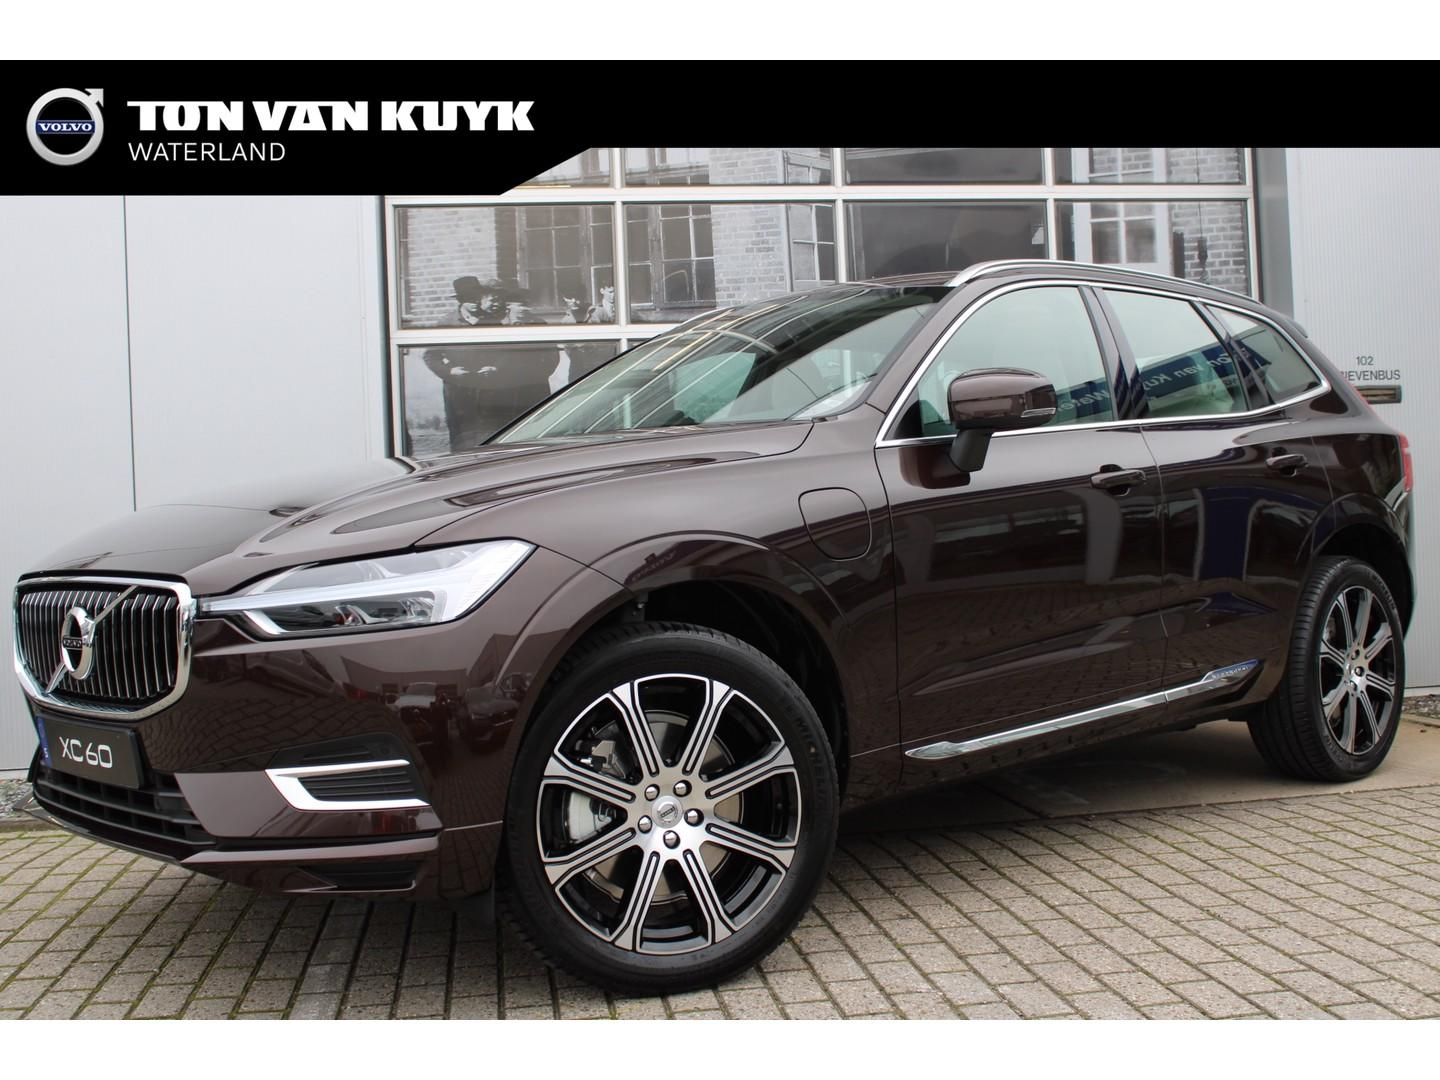 Volvo Xc60 T8 te 390pk awd automaat inscription / intellisafe / versatility line / park assist